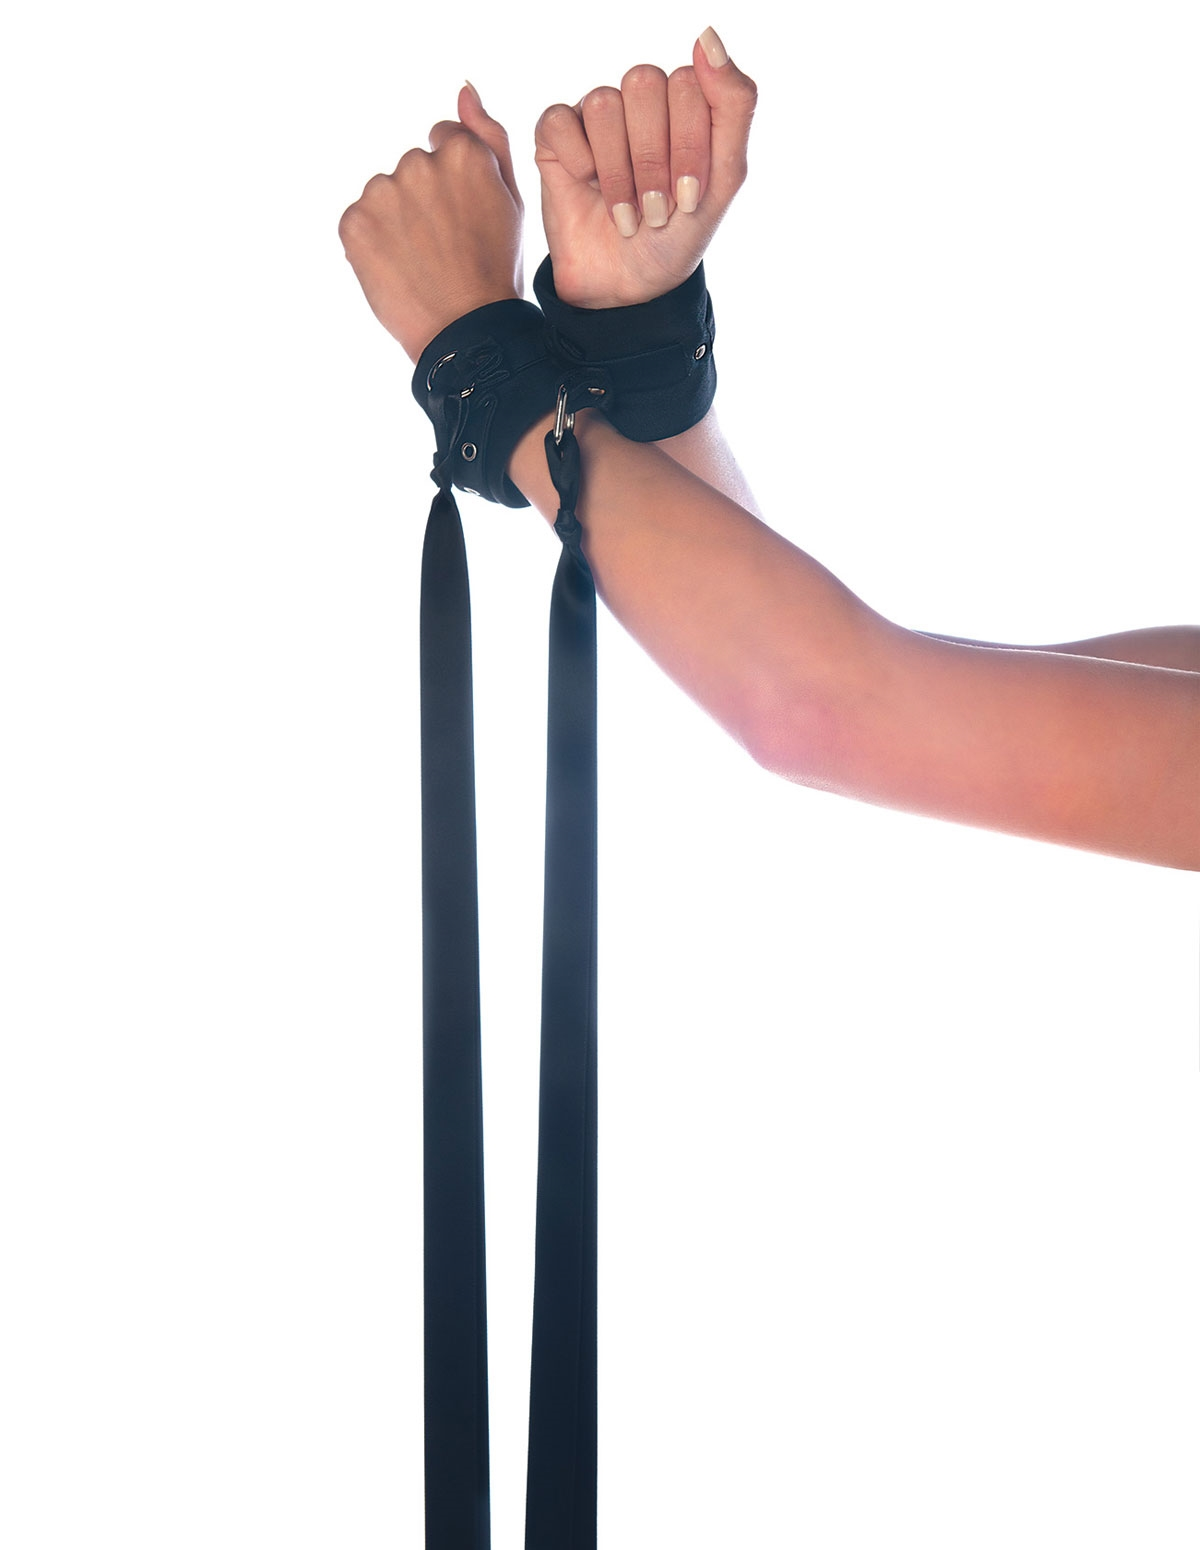 Fetish Soft Adjustable Wrist Cuffs